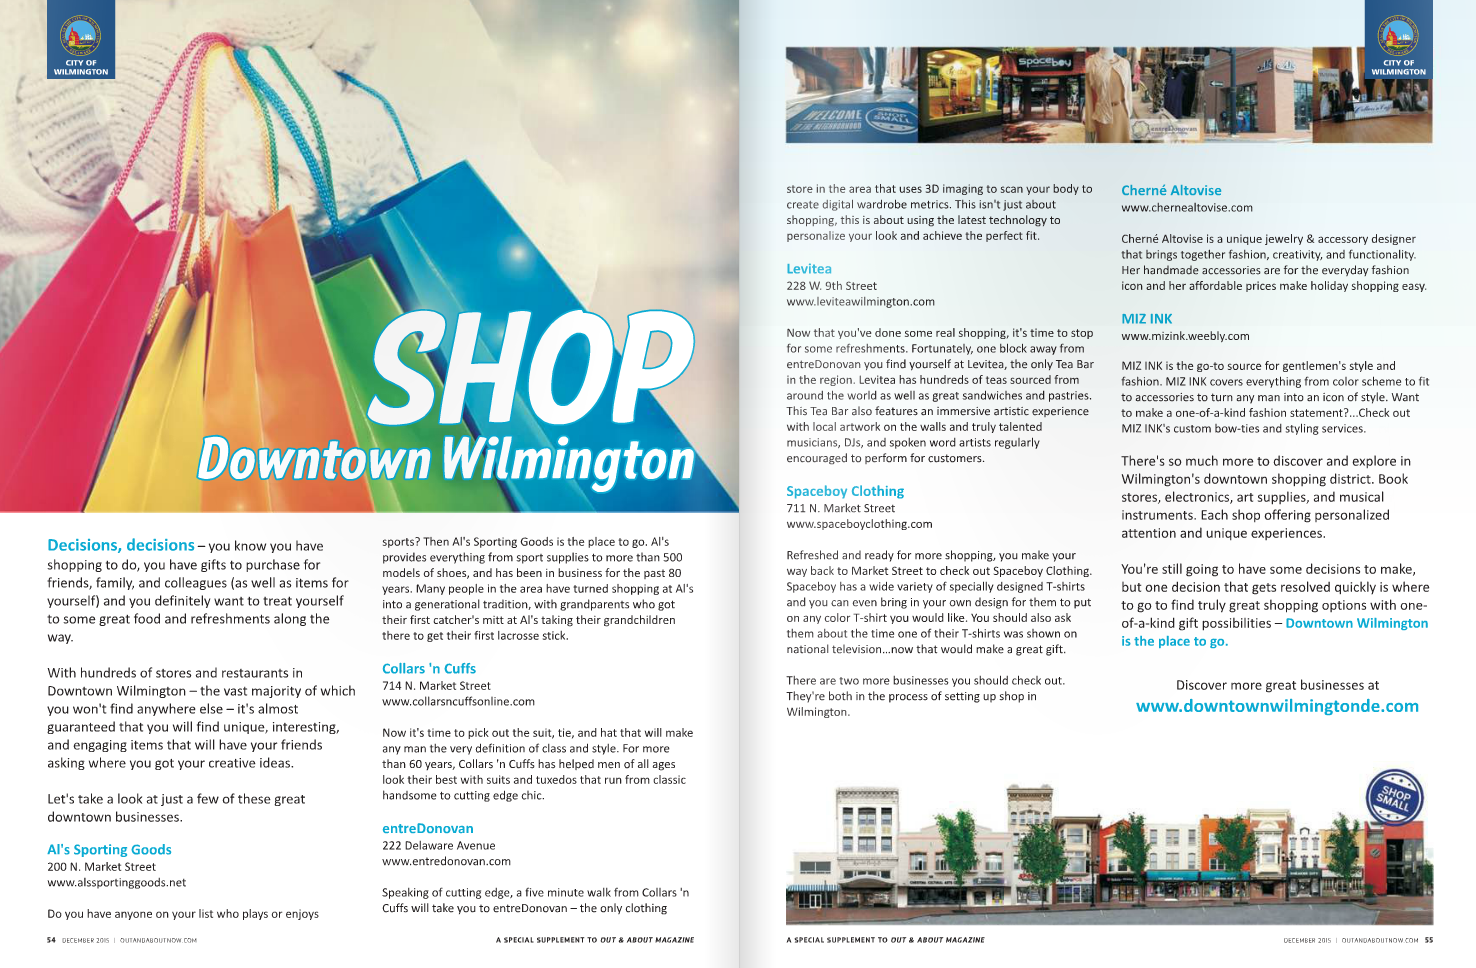 Out & About Shopping Guide